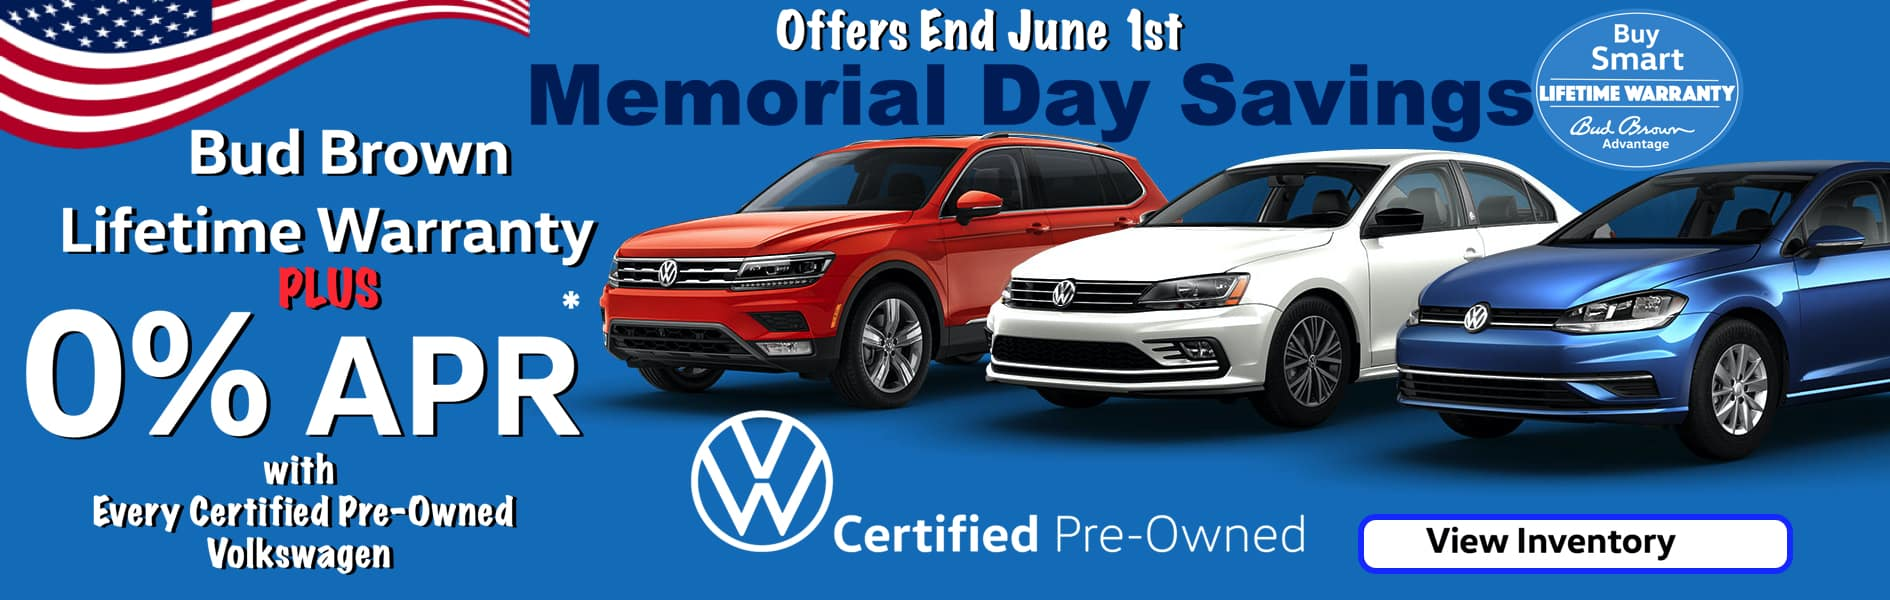 0% APR plus Bud Brown Lifetime Warranty on every Certified Pre-Owned Volkswagen